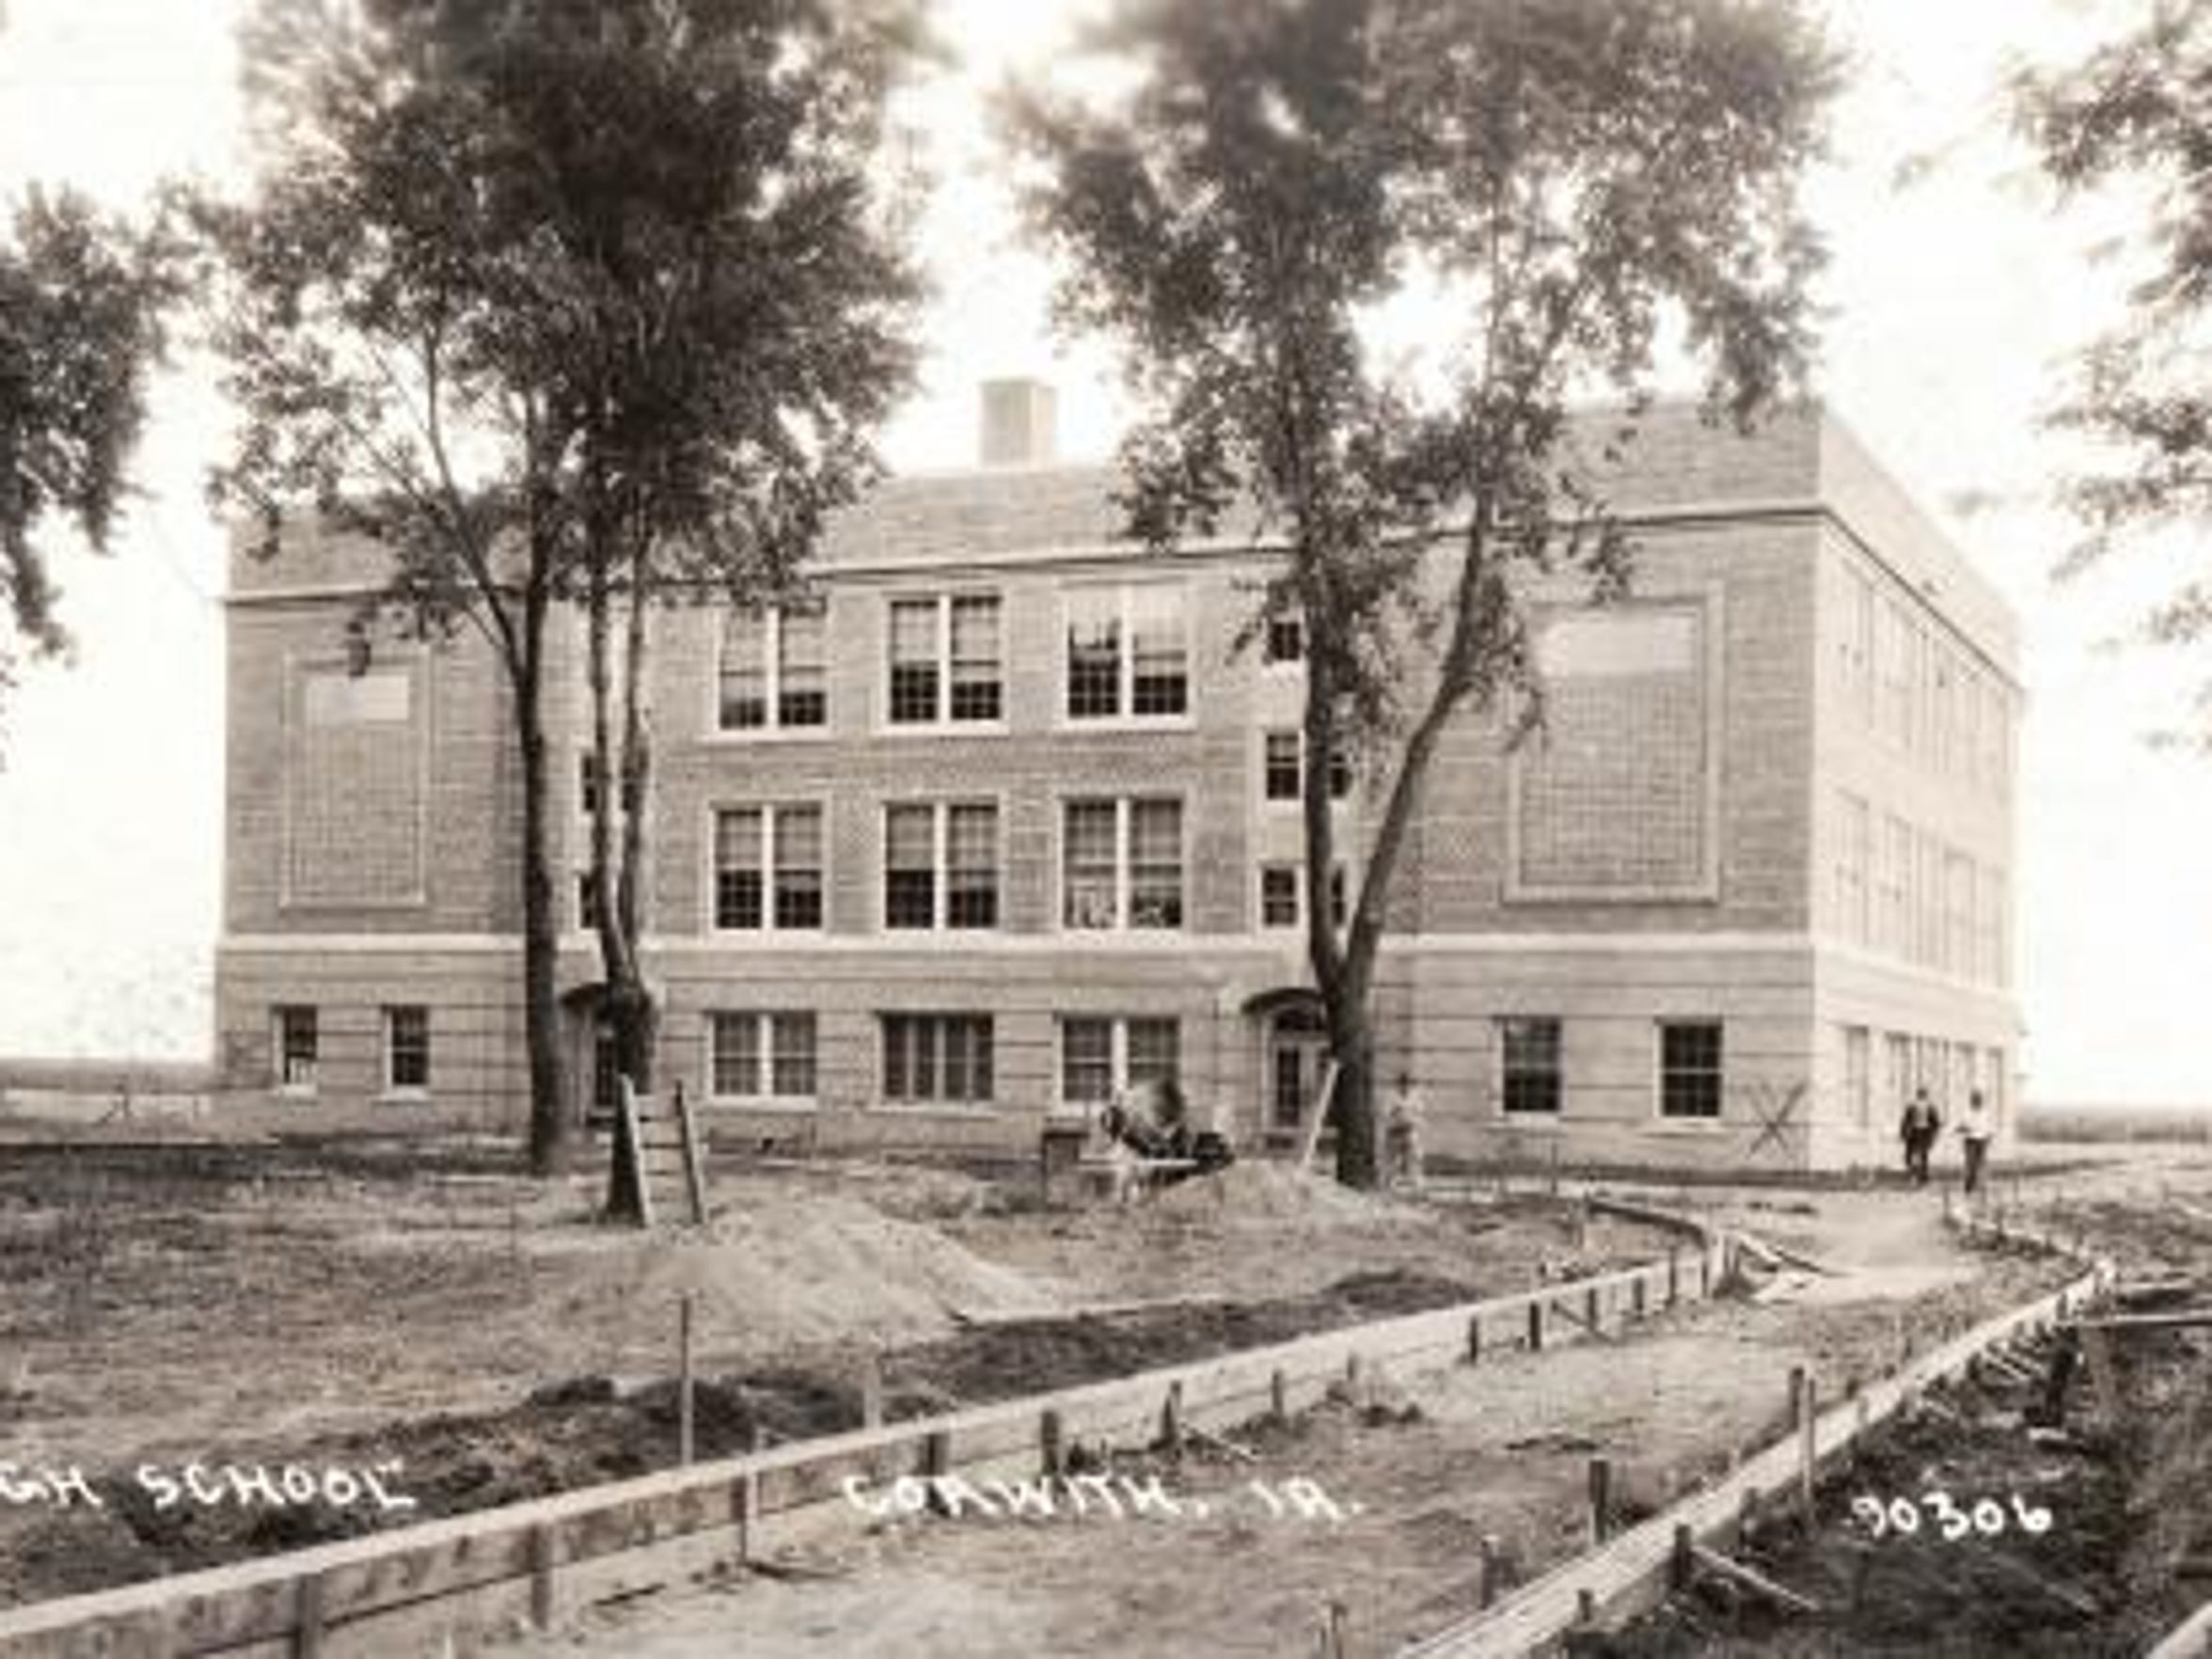 A 1918 photo of the Corwith Wesley school in Hancock County when it was almost done being constructed.